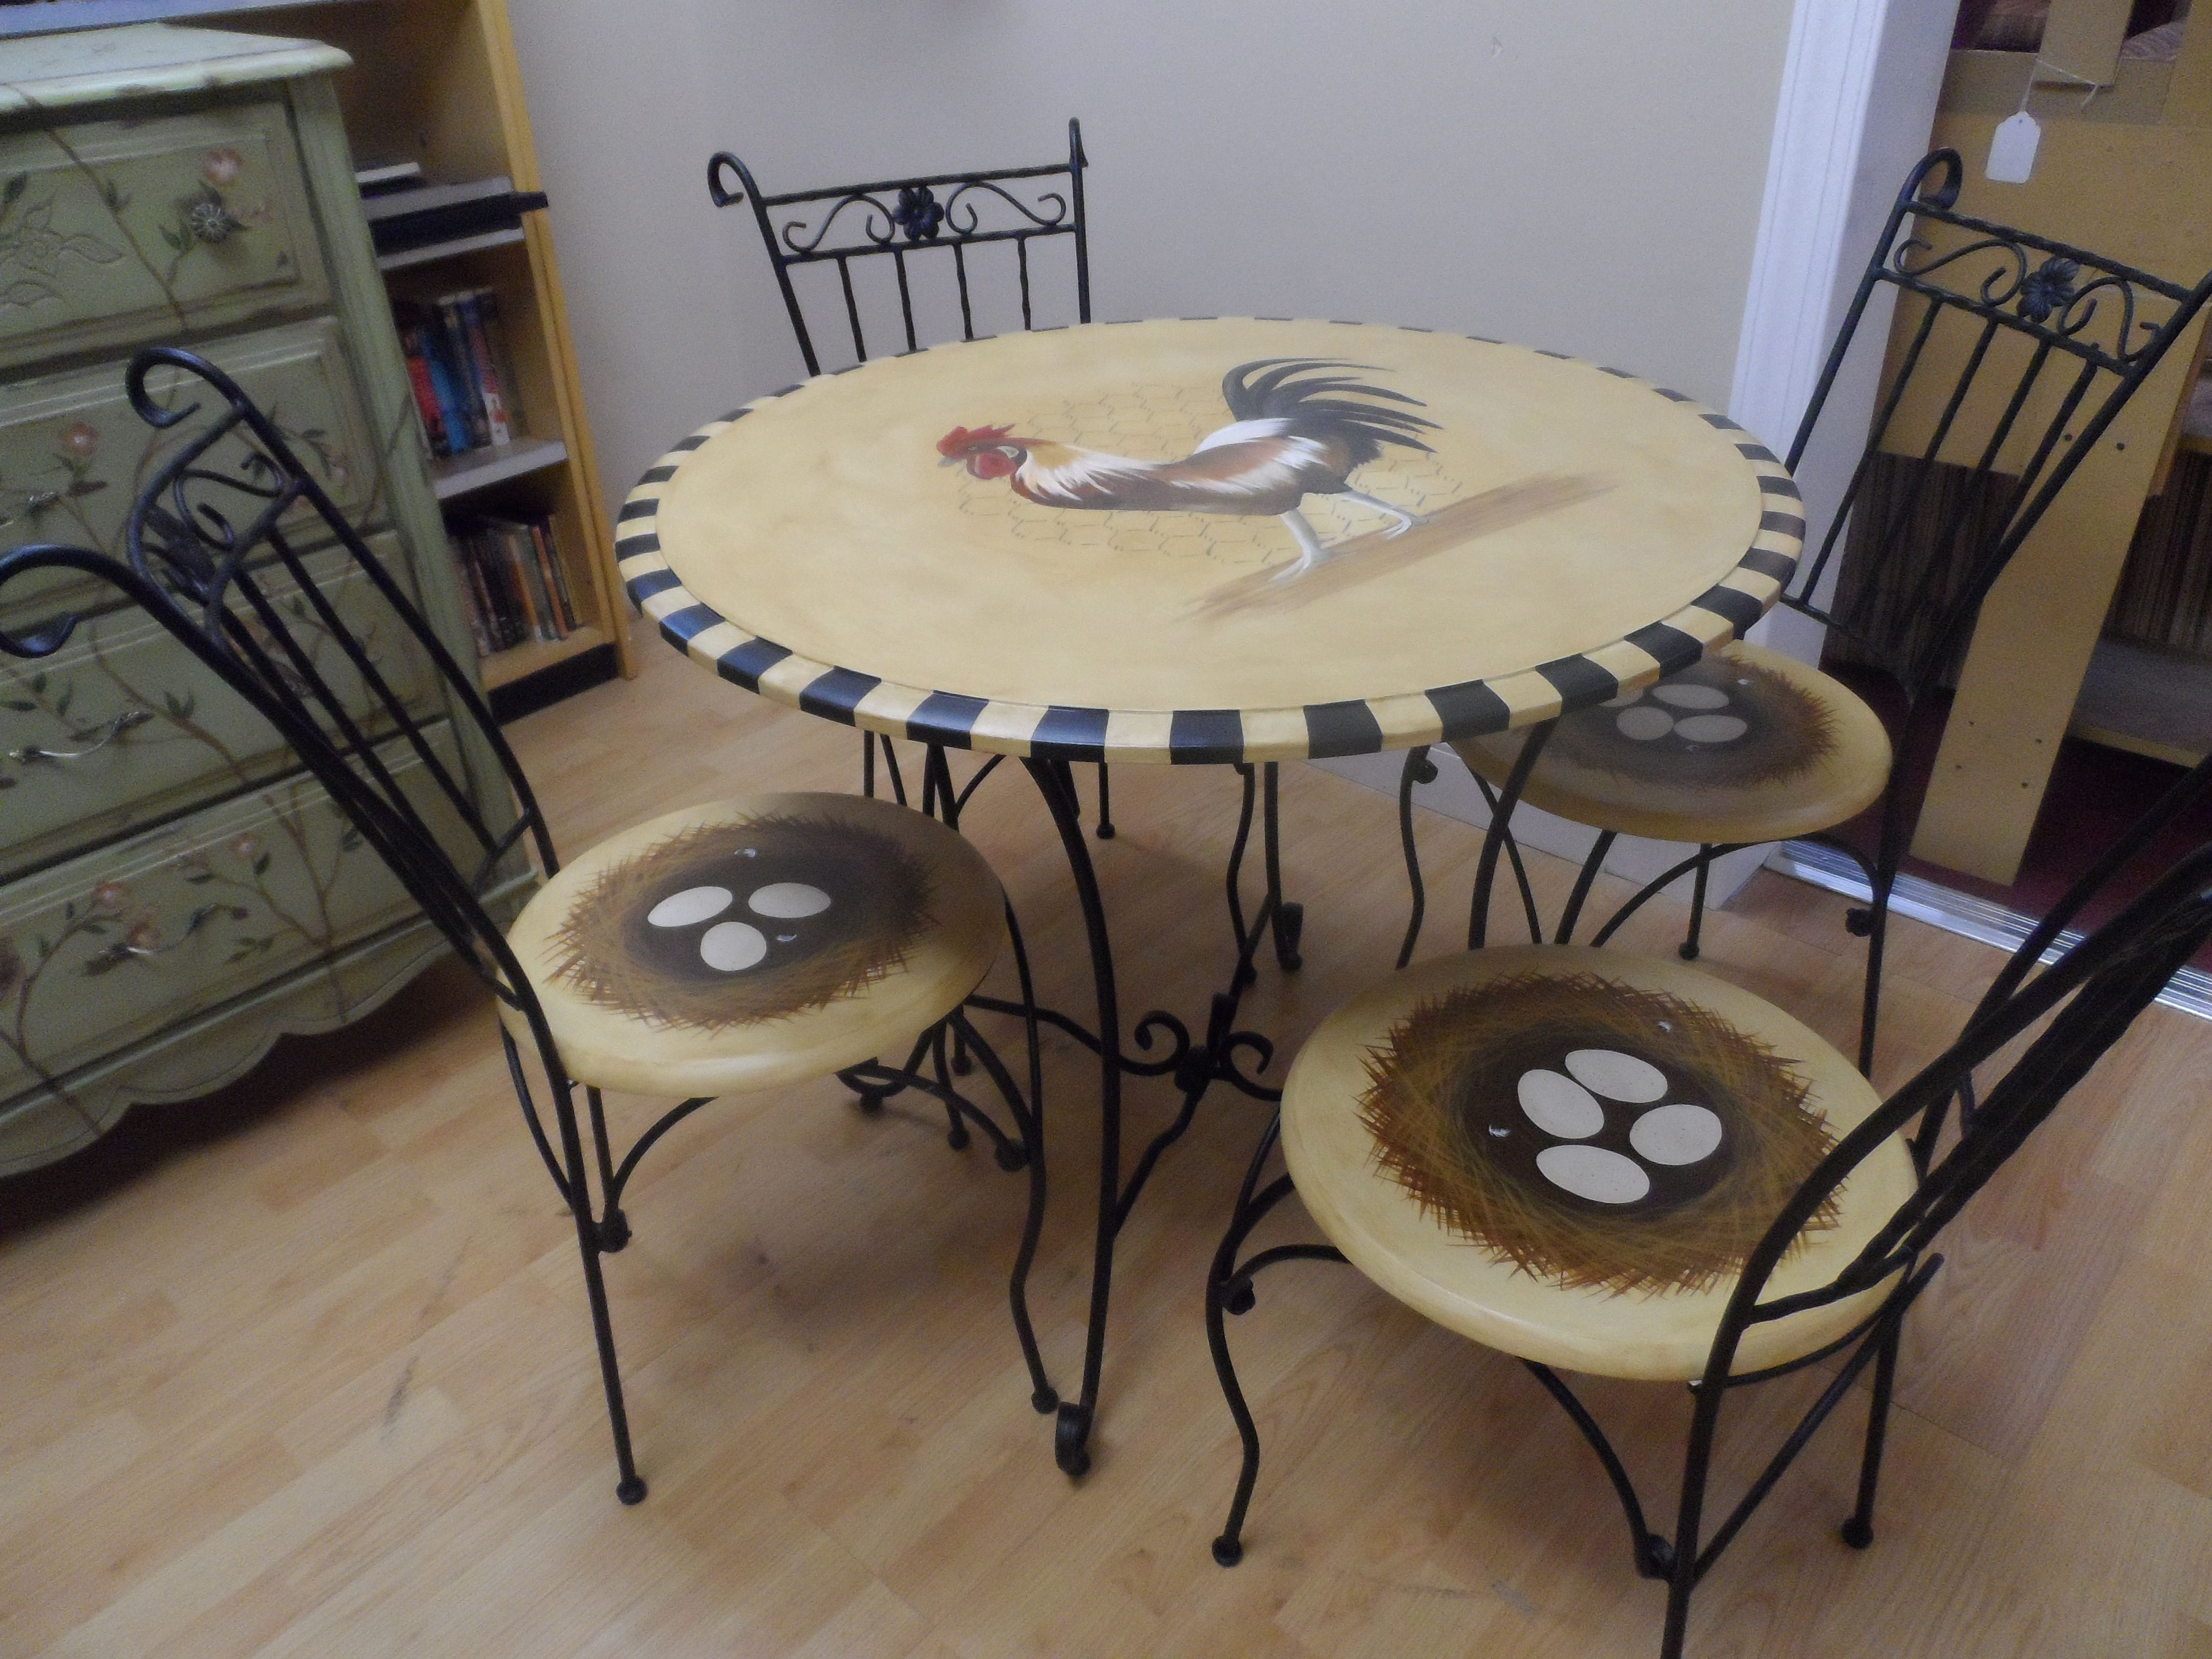 Wonderful French Country Rooster Table With Nest Chairs  My Most Popular Design For  Customers